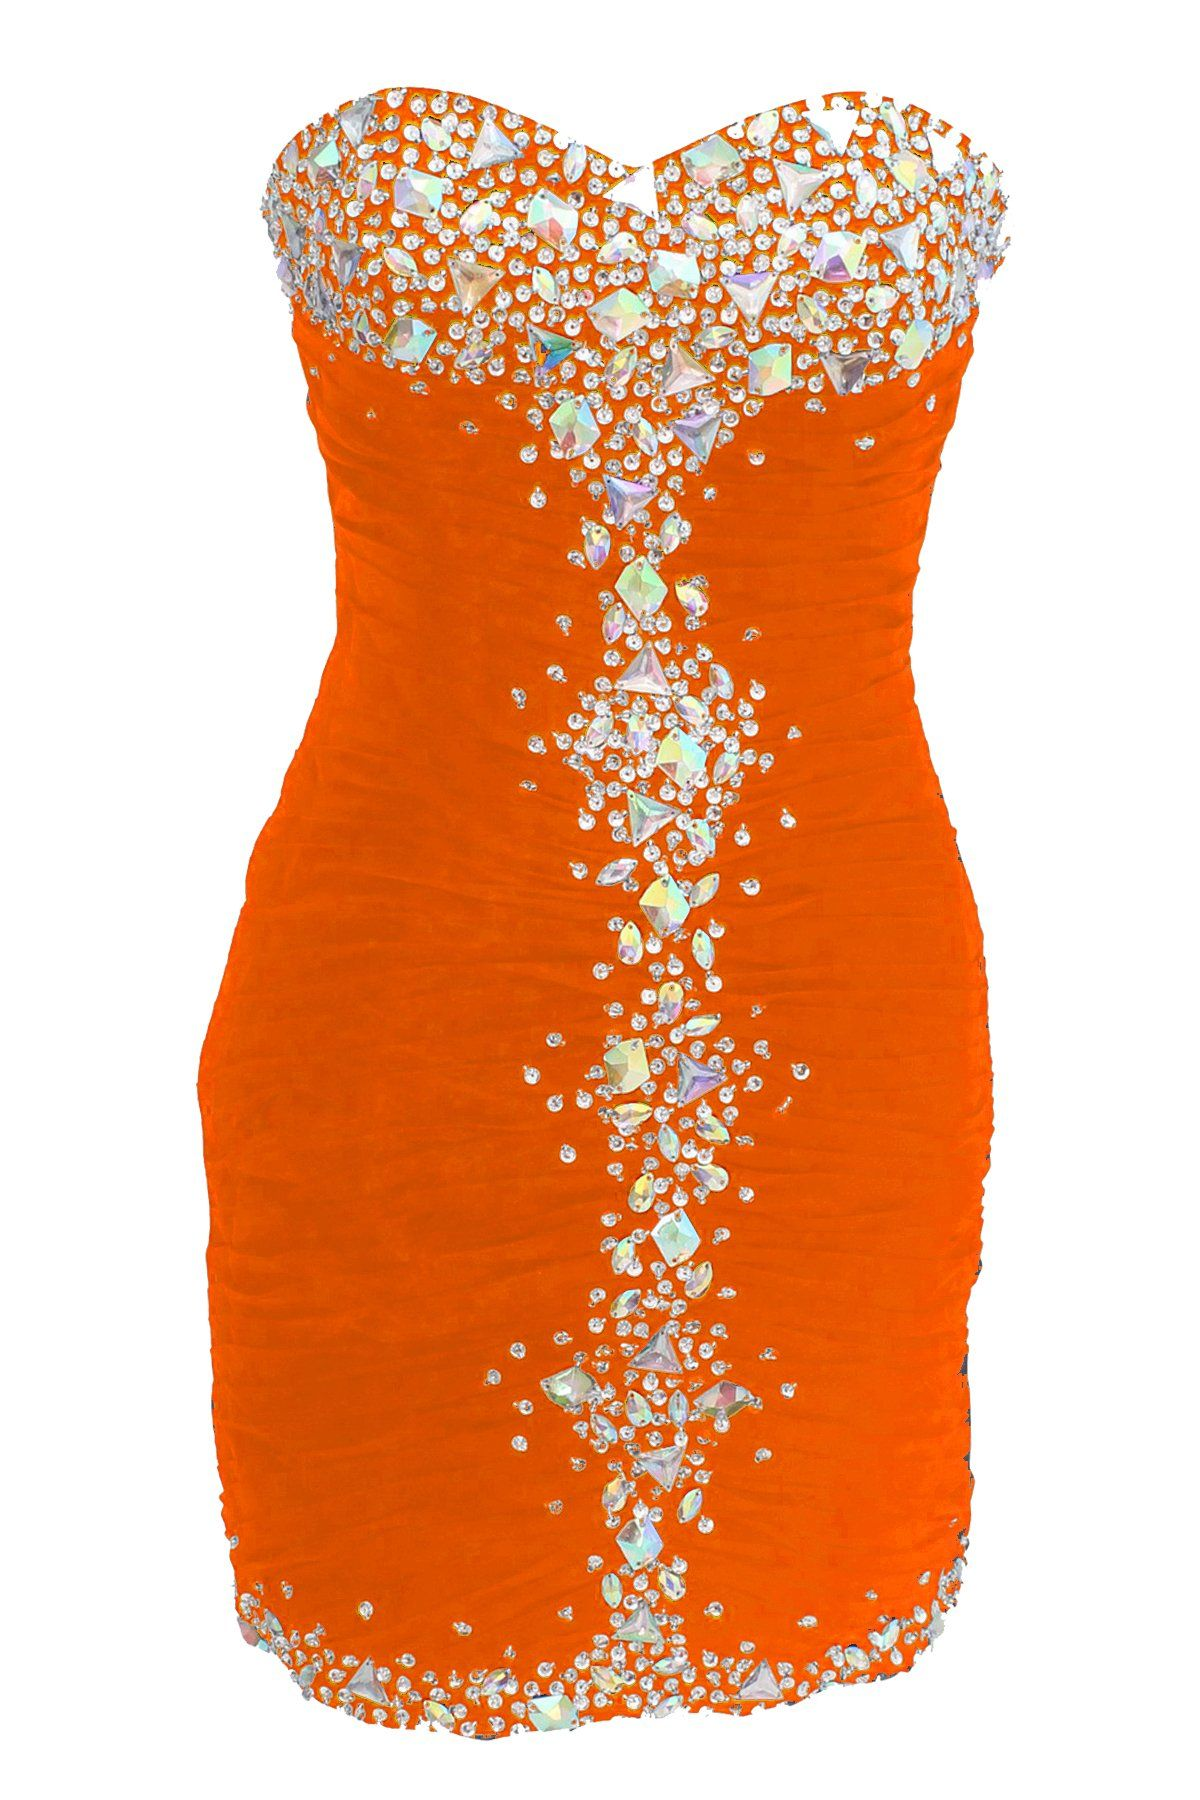 Dressystar short sheath orange prom evening prom dresses size